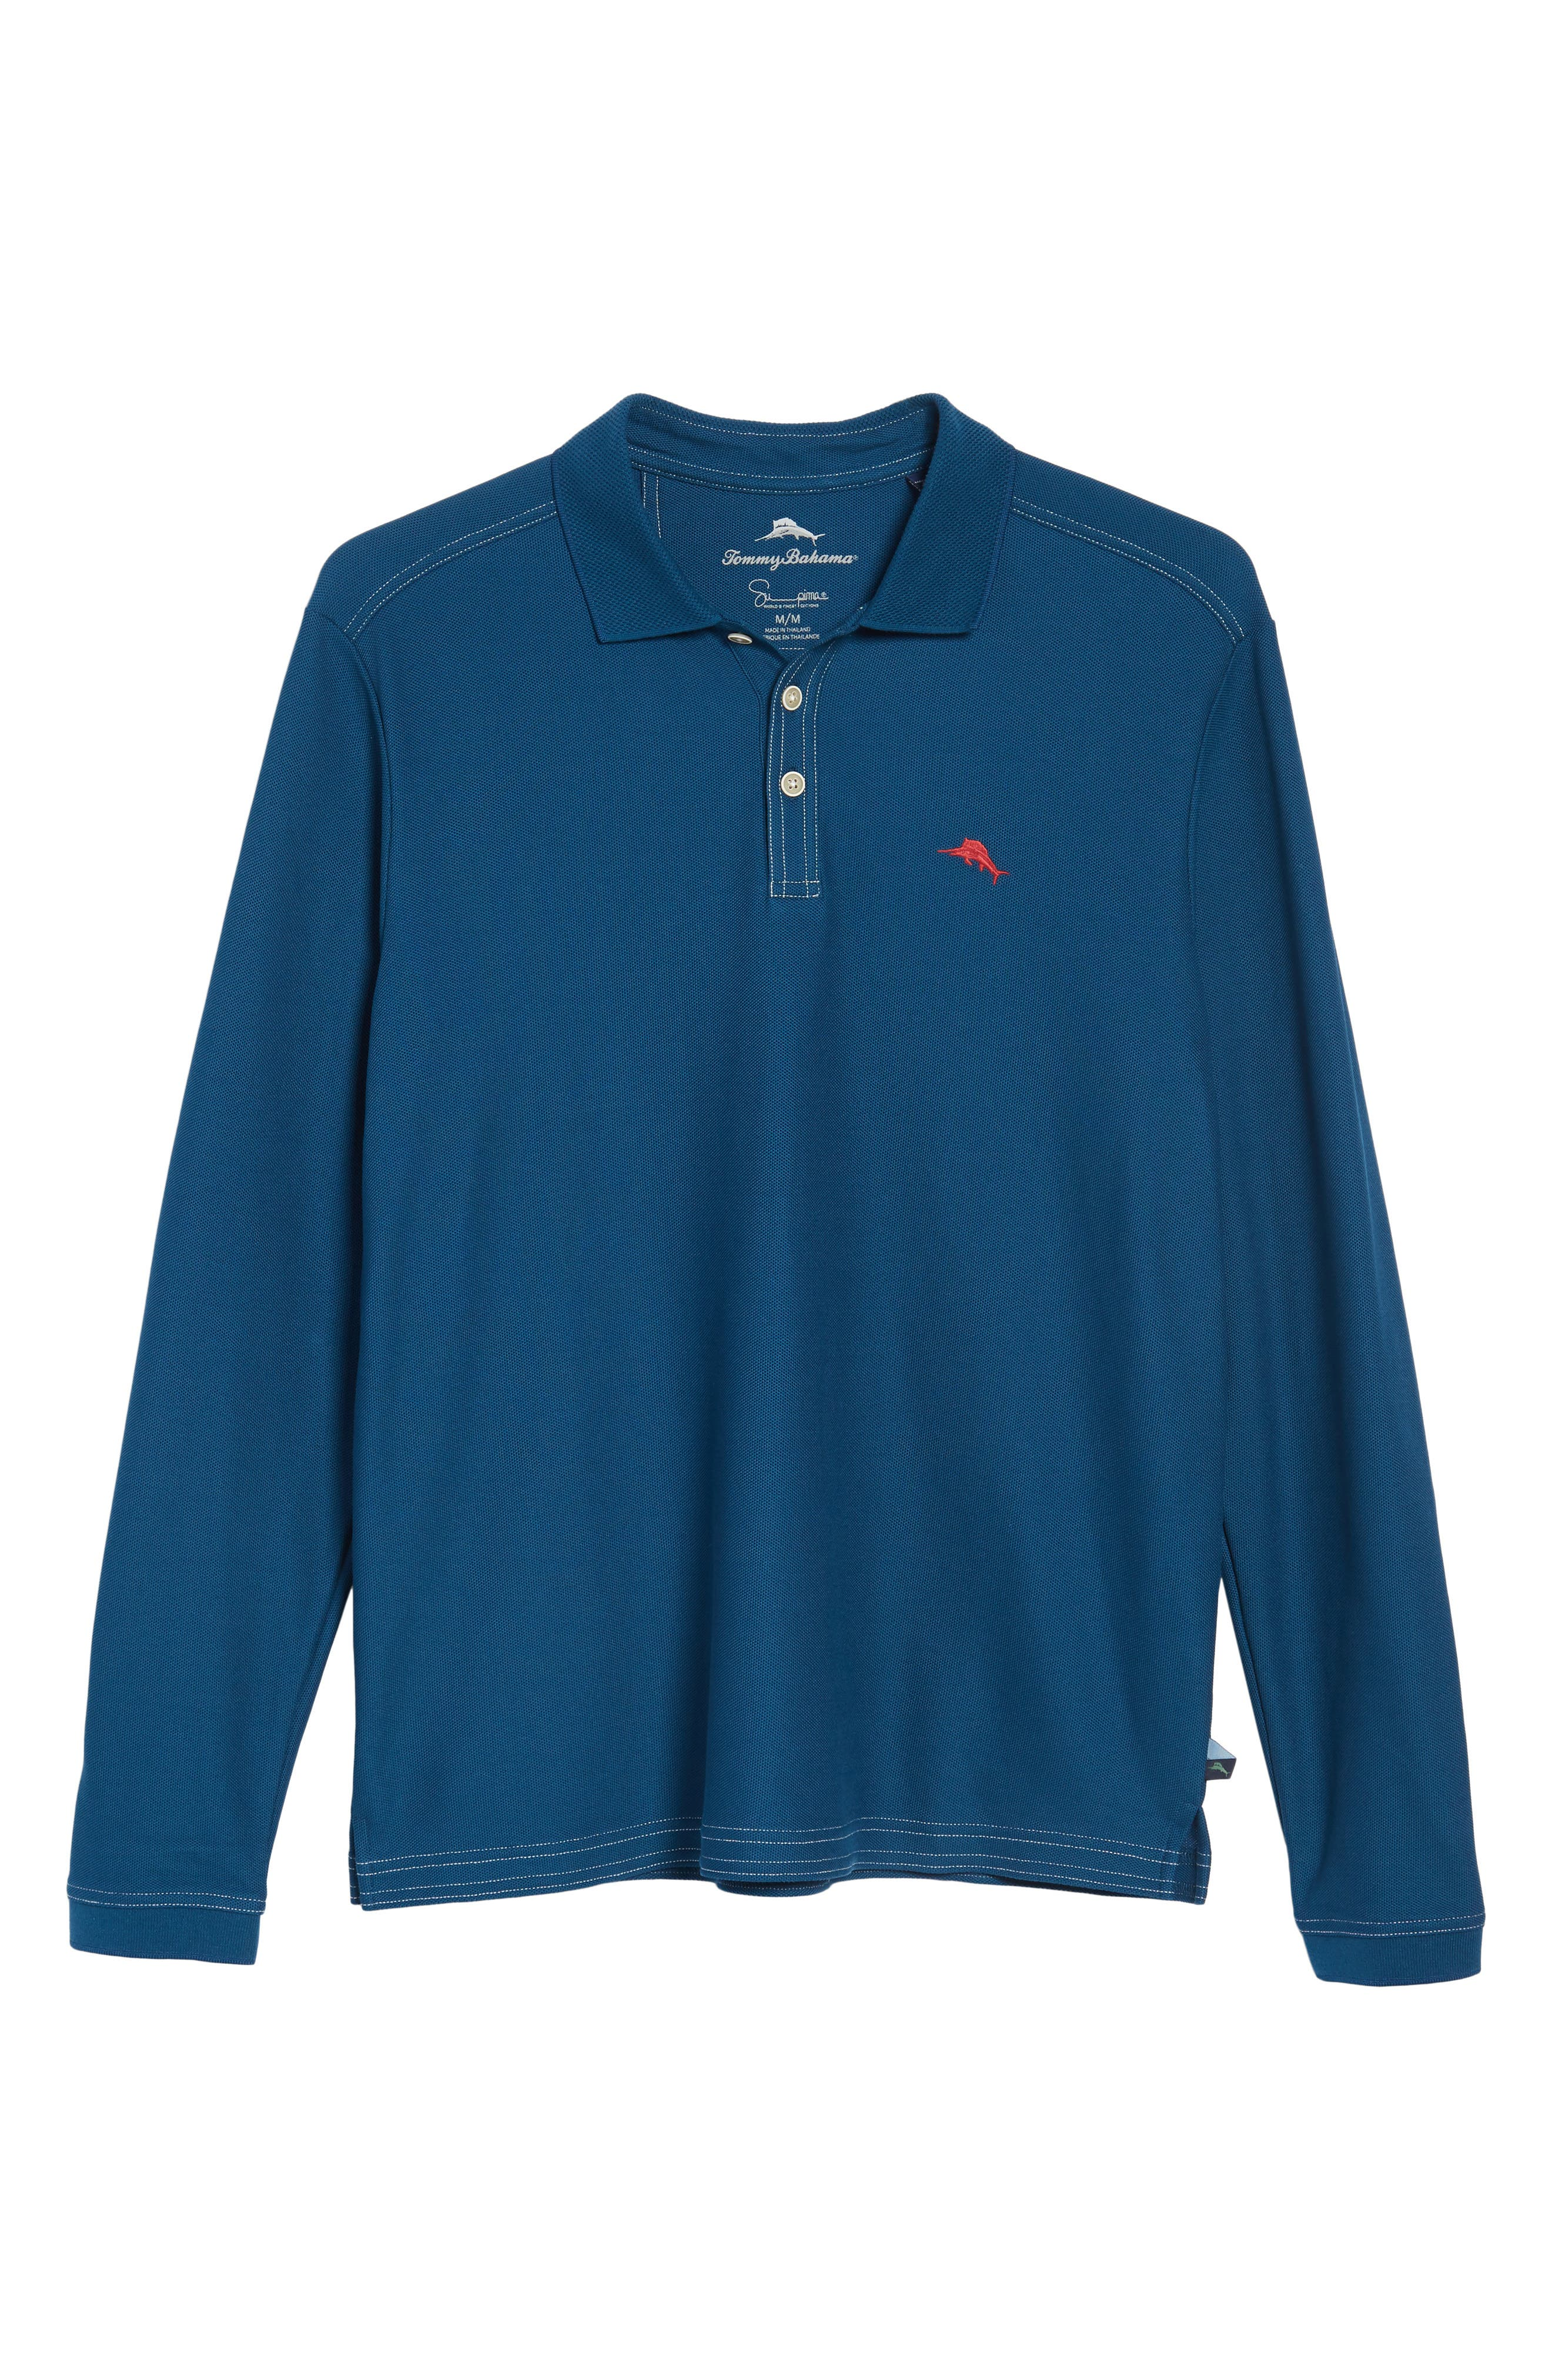 Emfielder Long Sleeve Polo,                             Alternate thumbnail 6, color,                             Slate Teal